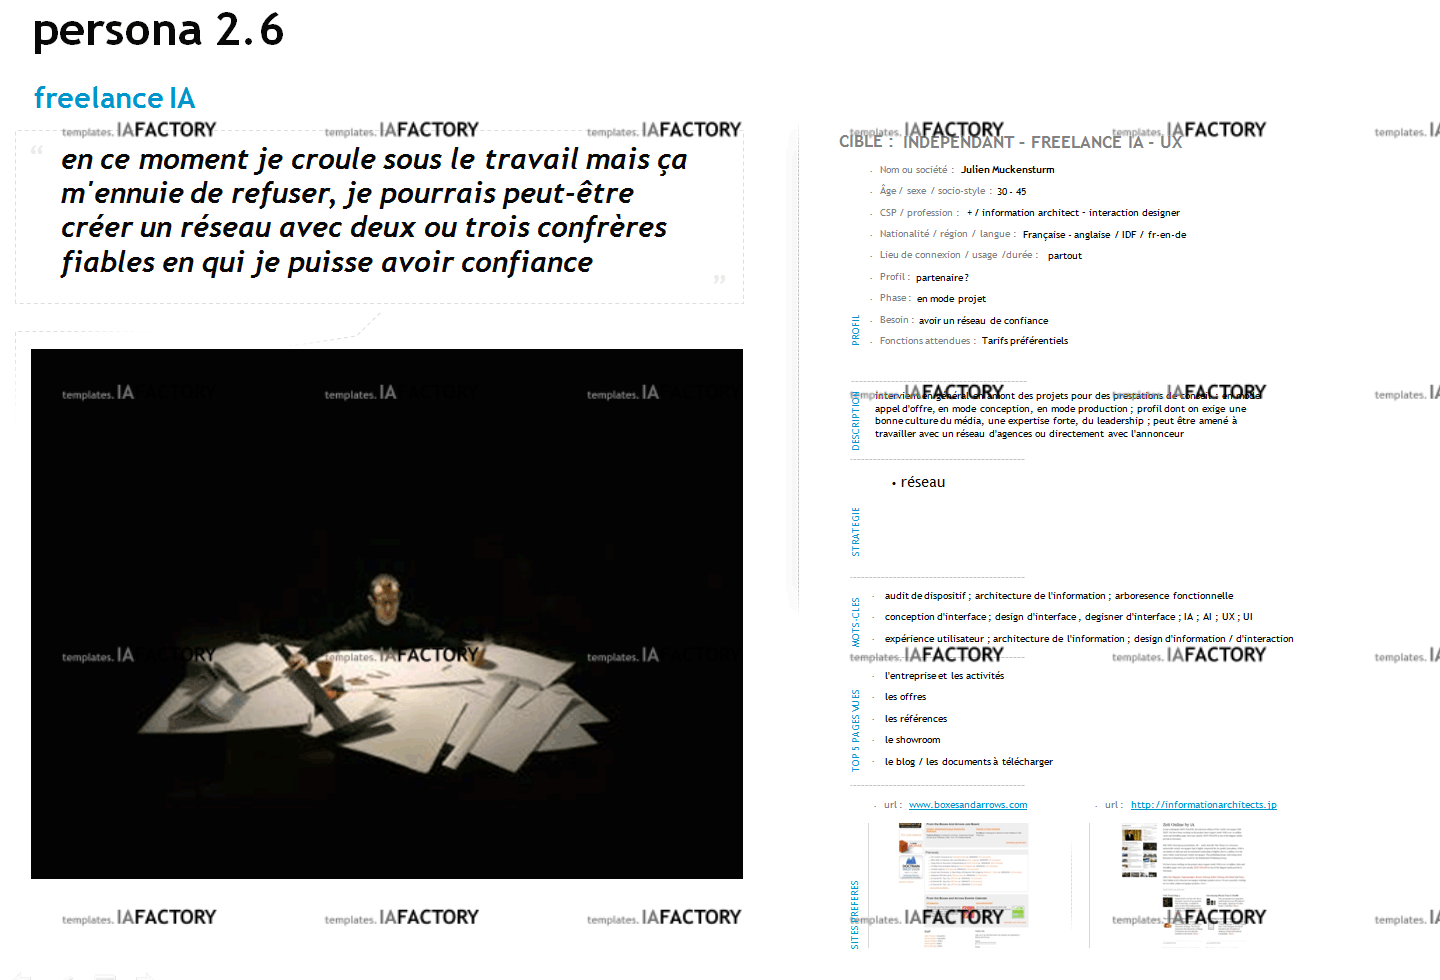 persona - fiche persona (http://templates.iafactory.fr) – fichier .ppt